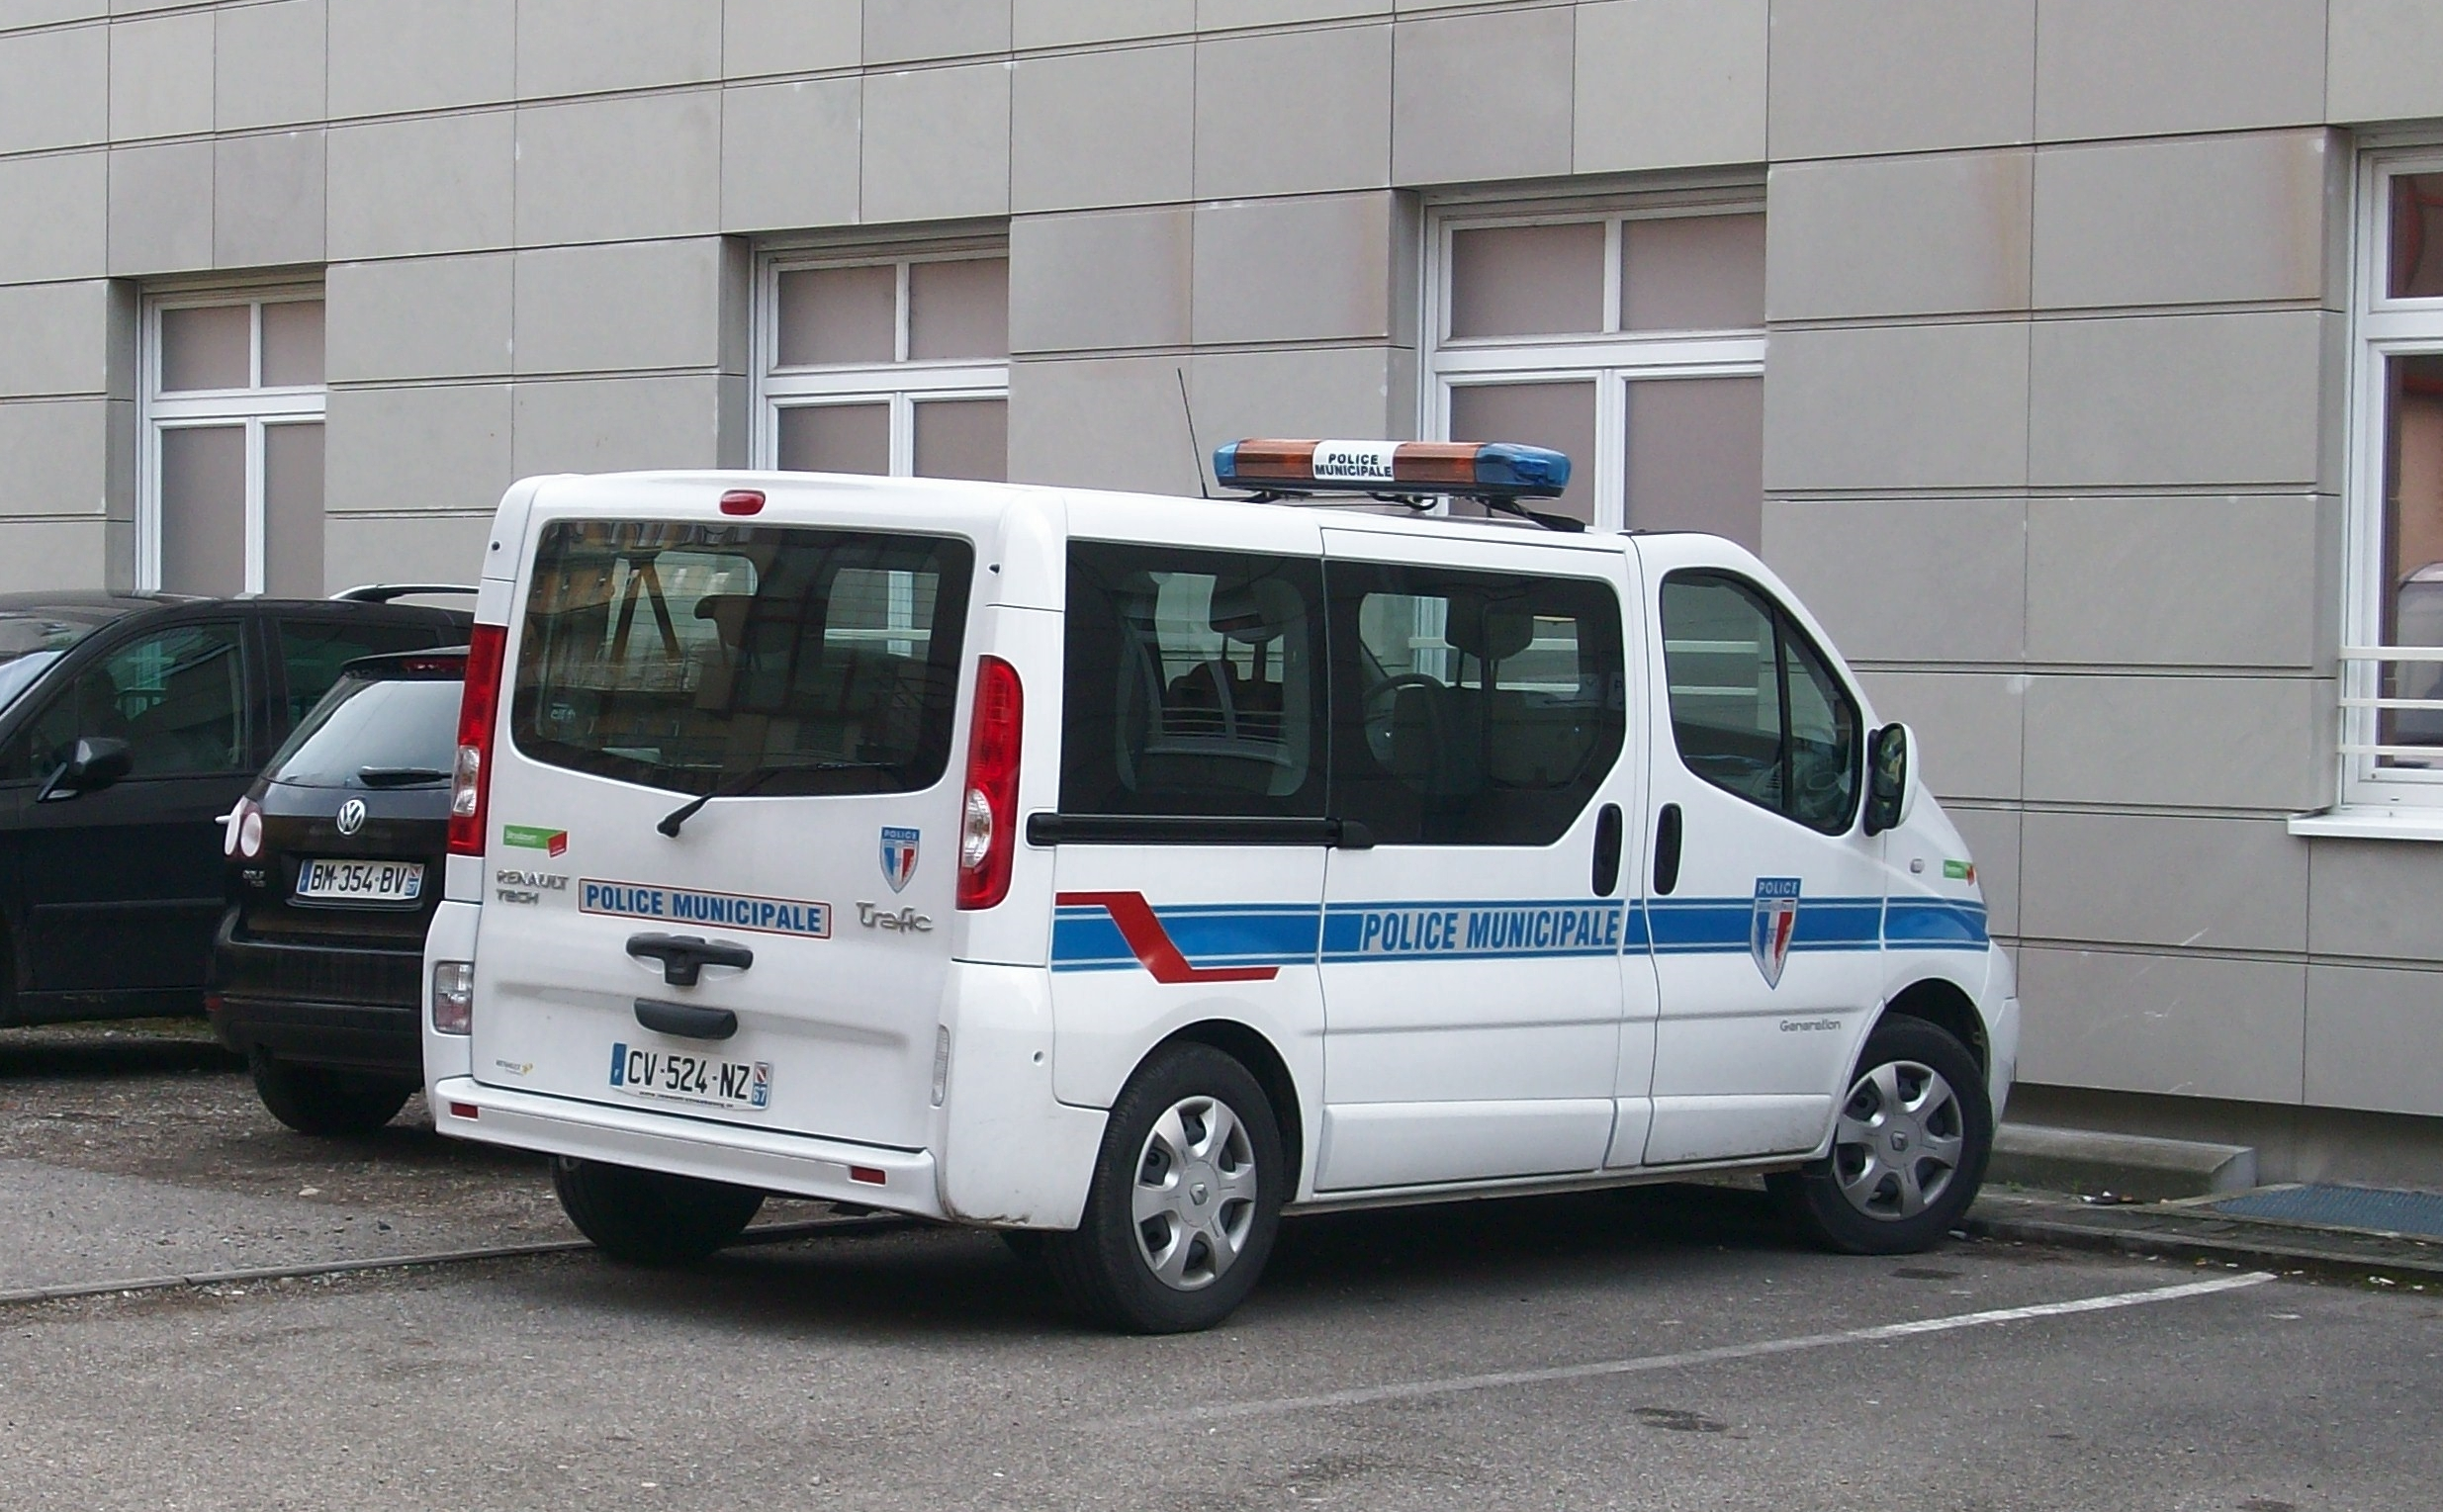 file renault trafic police municipale de strasbourg novembre 2013 jpg wikimedia commons. Black Bedroom Furniture Sets. Home Design Ideas